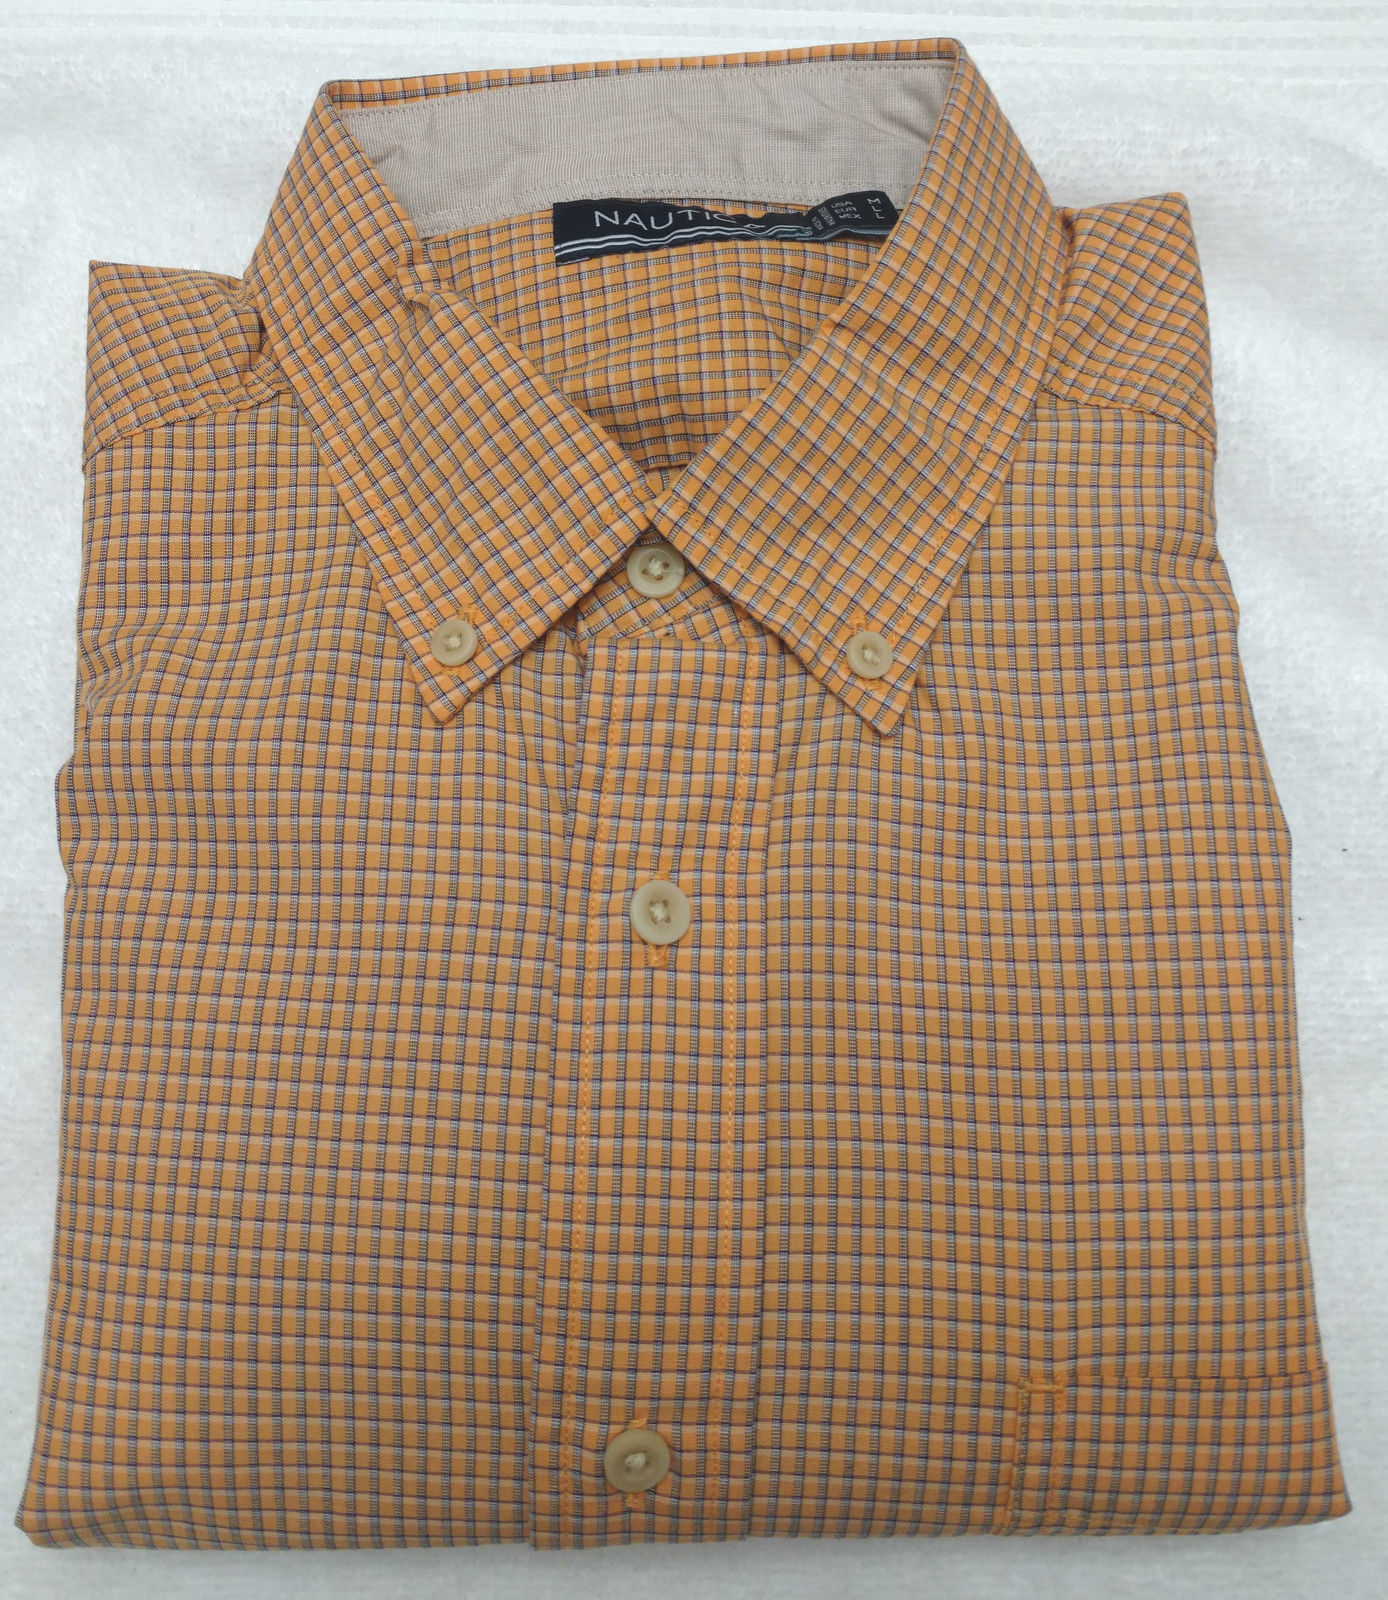 Nautica Men's Mini-Plaid Long Sleeve Dress Shirt Orange Sorbet Large